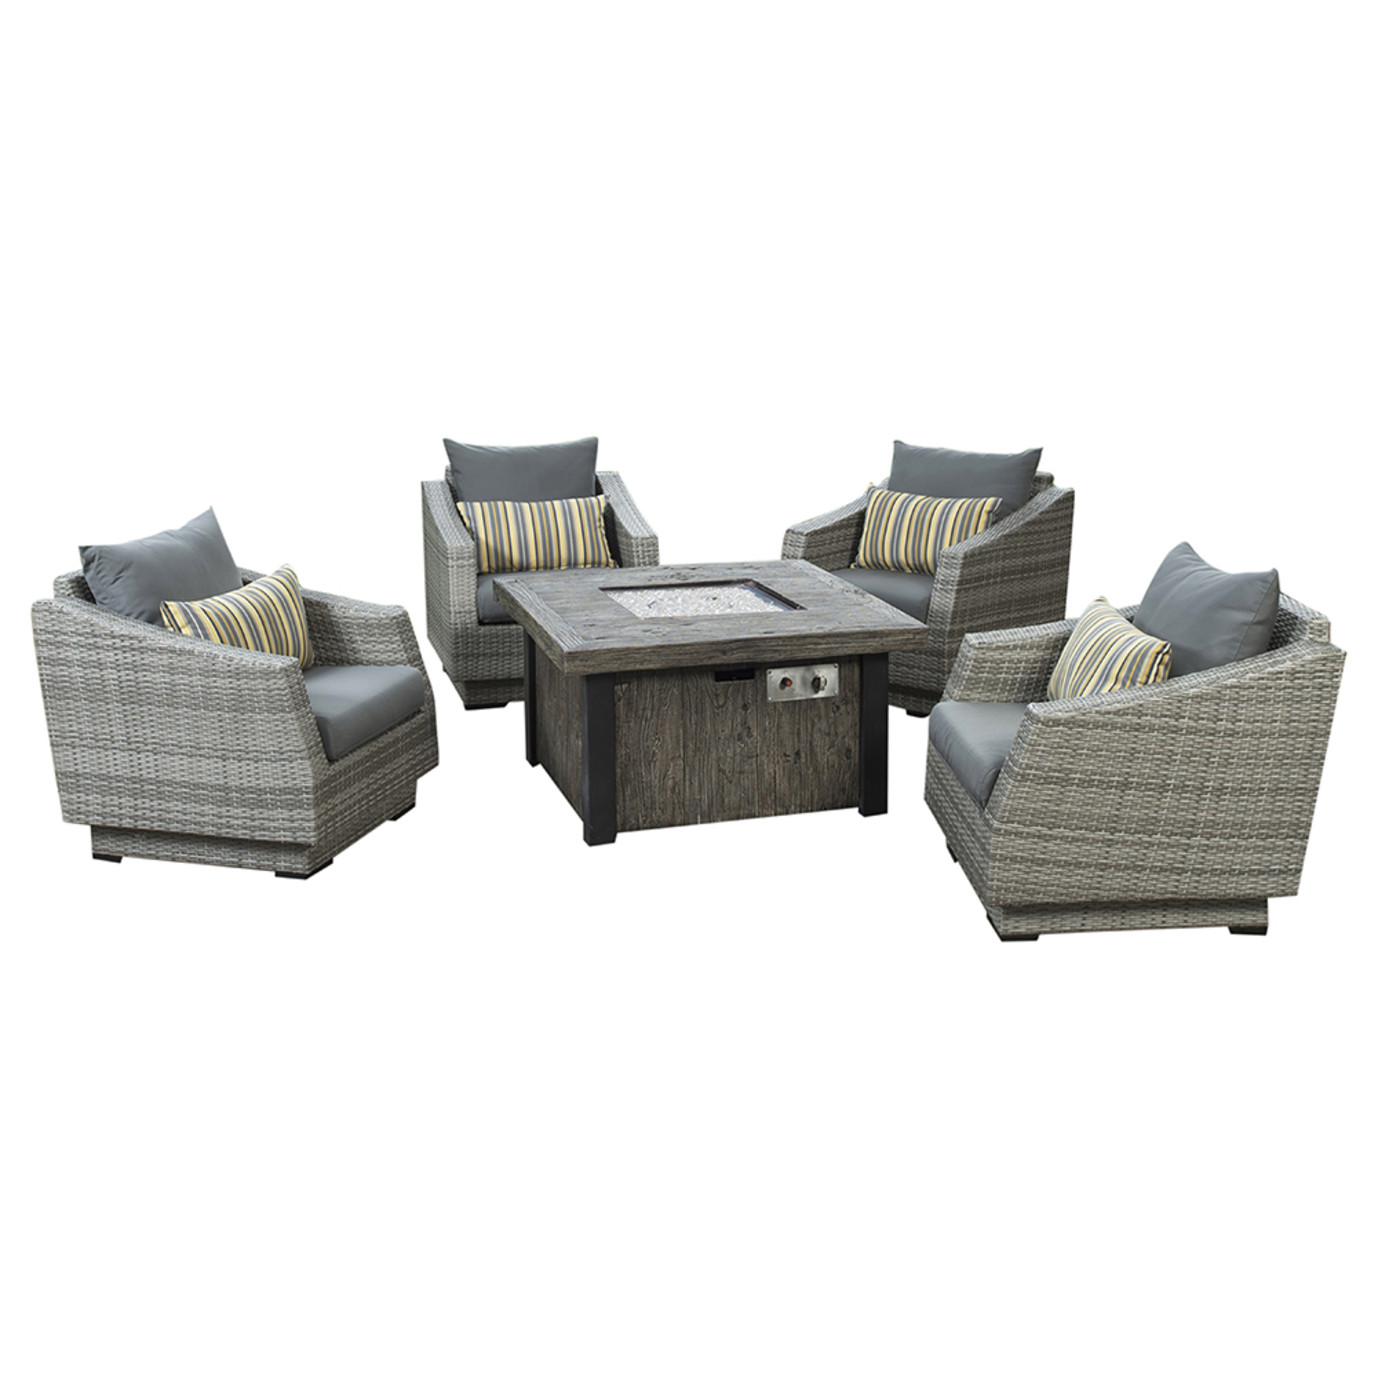 Cannes™ 5pc Fire Chat Set - Charcoal Grey